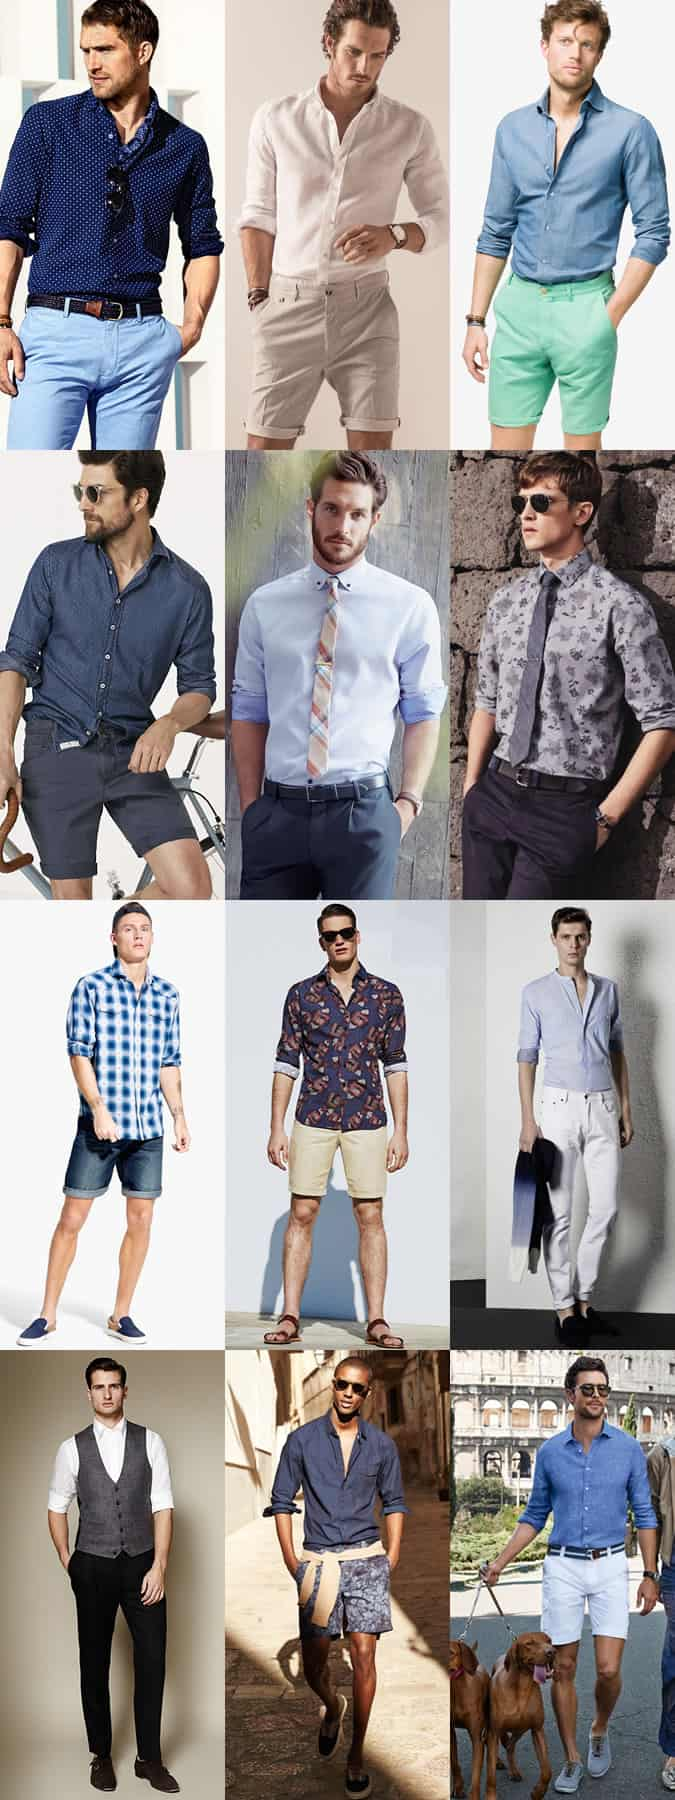 Men's Long-Sleeved Shirts With Sleeves Rolled Up Outfit Inspiration Lookbook